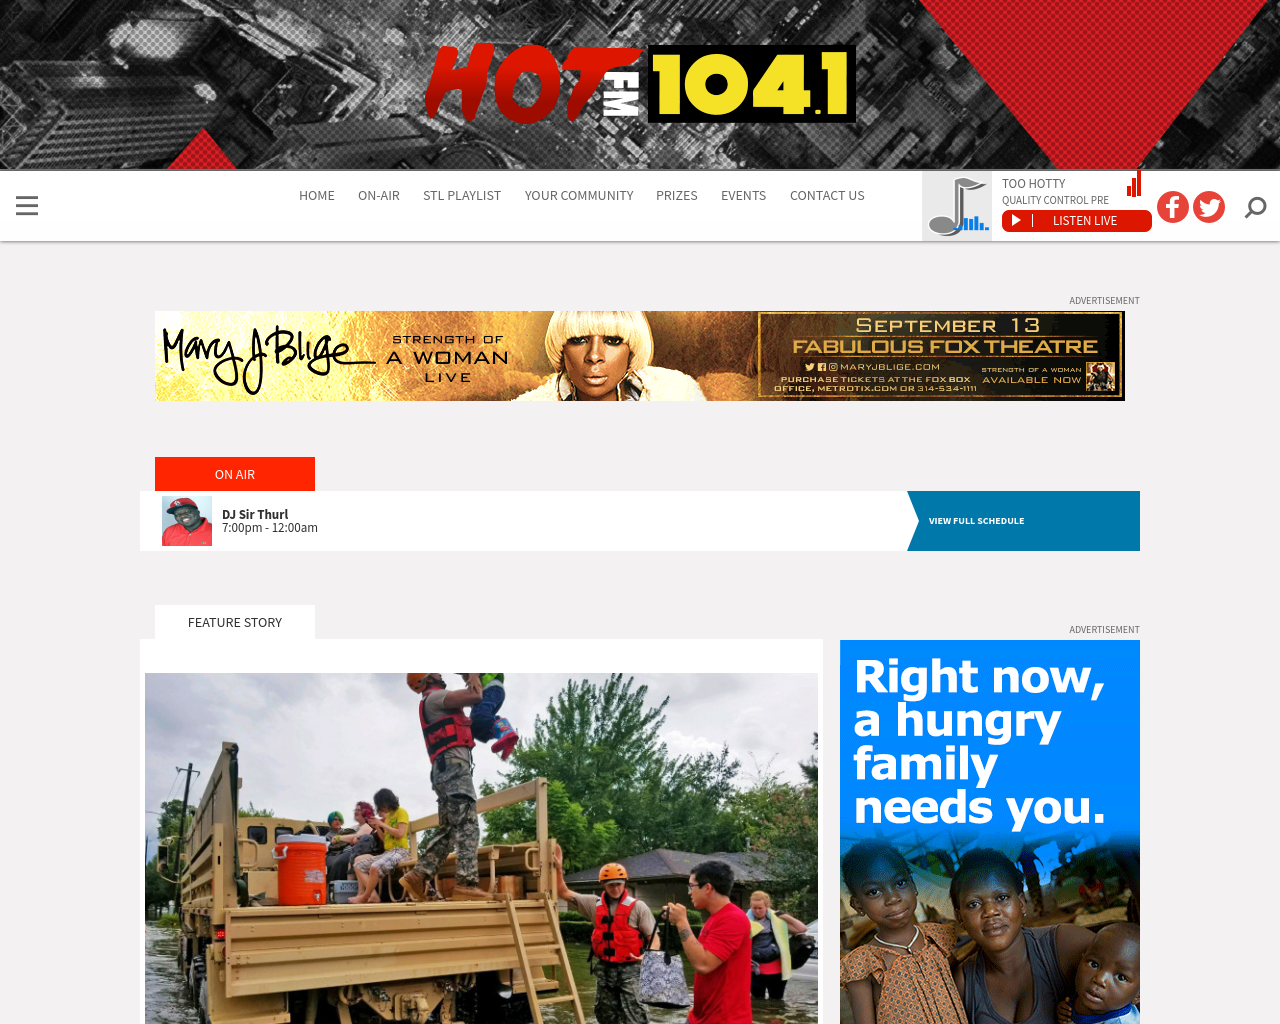 Hot-FM-104.1-Advertising-Reviews-Pricing